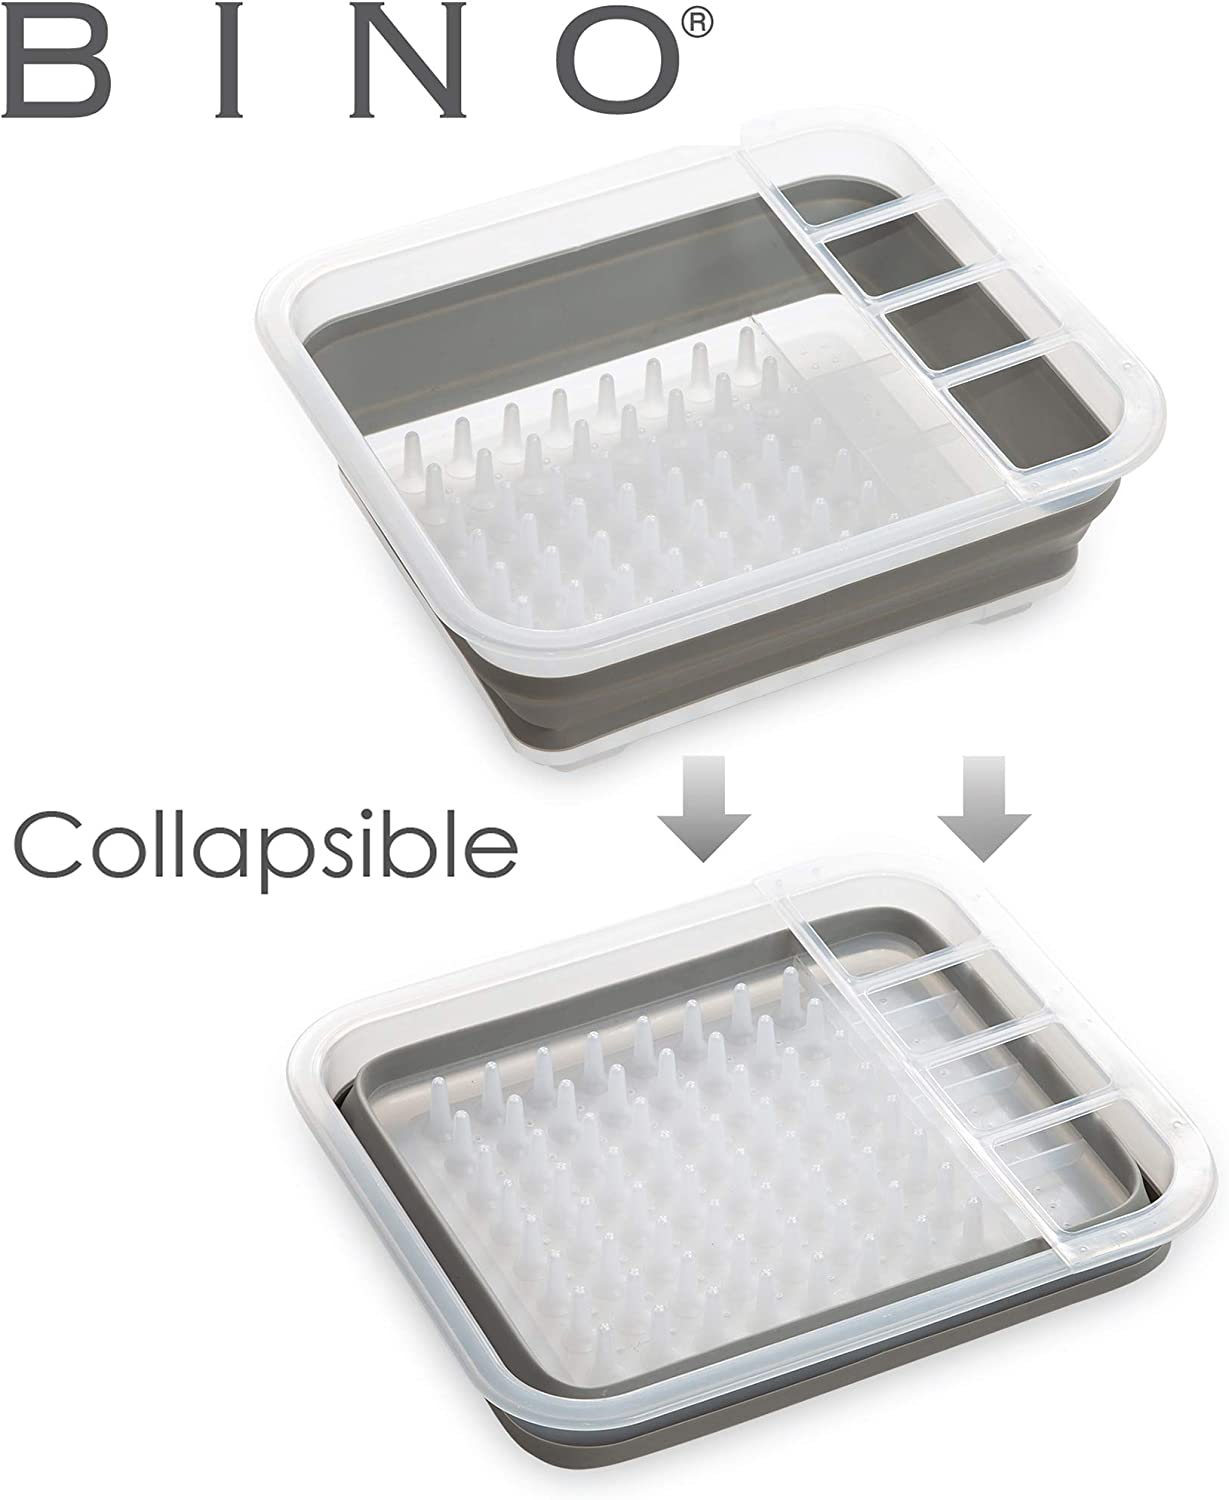 BINO Collapsible Dish Drying Rack - Space Saving Folding Dish and Cutlery Drainer for Kitchen, Frosted